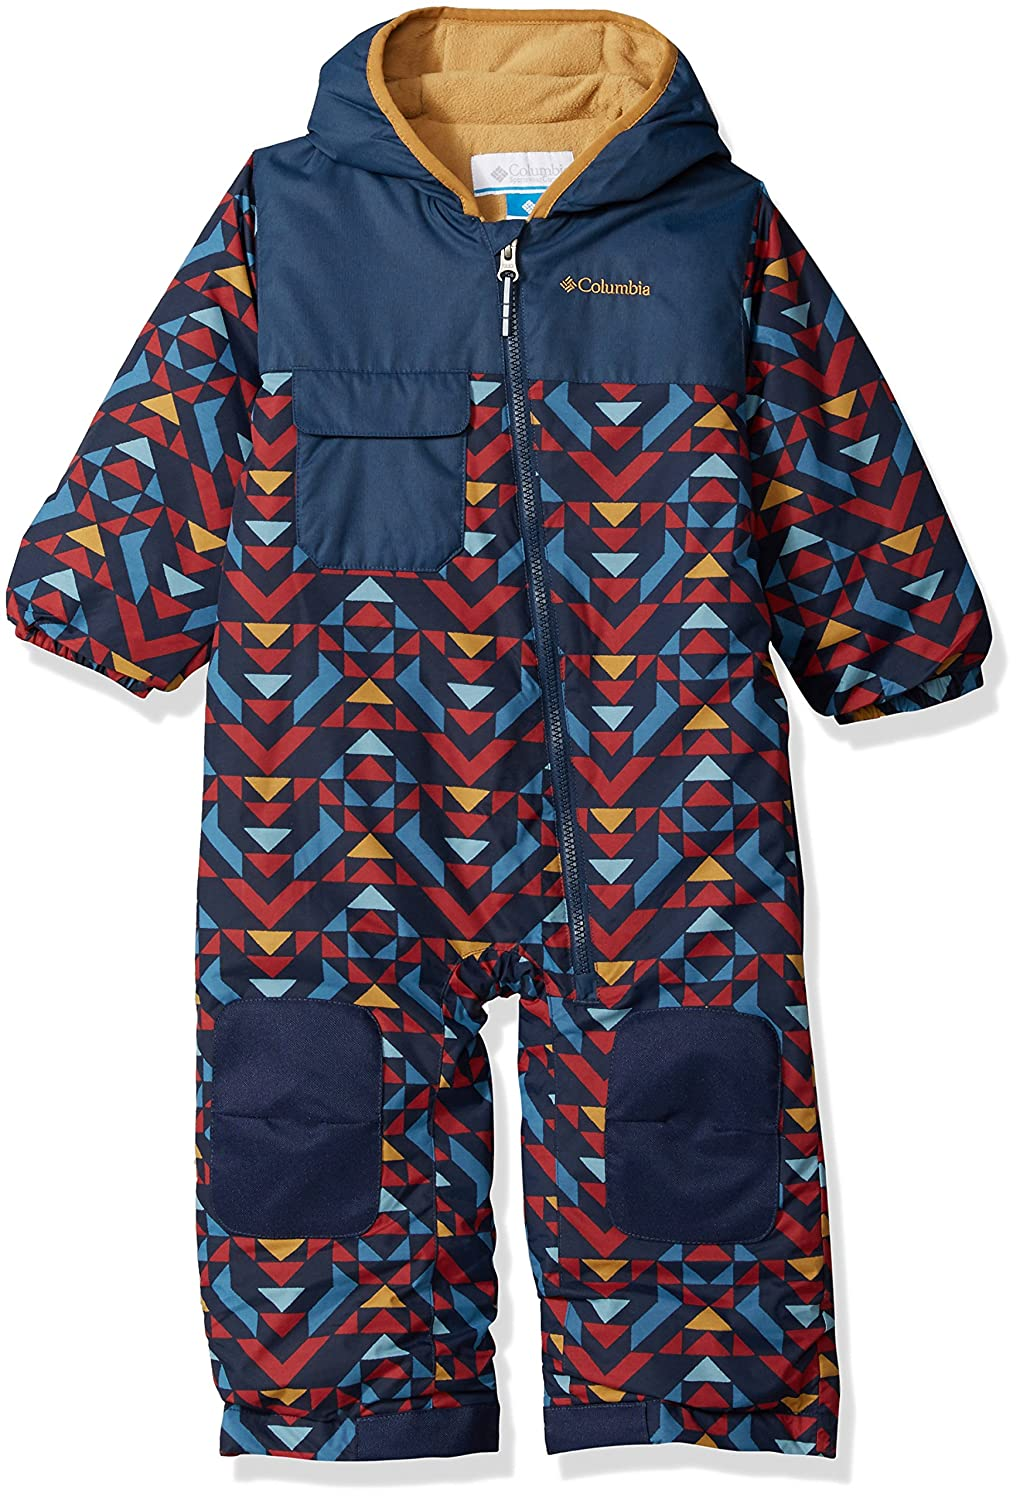 b36cfc4d4 Amazon.com: Columbia Boys' Toddler' Hot-tot Suit: Clothing